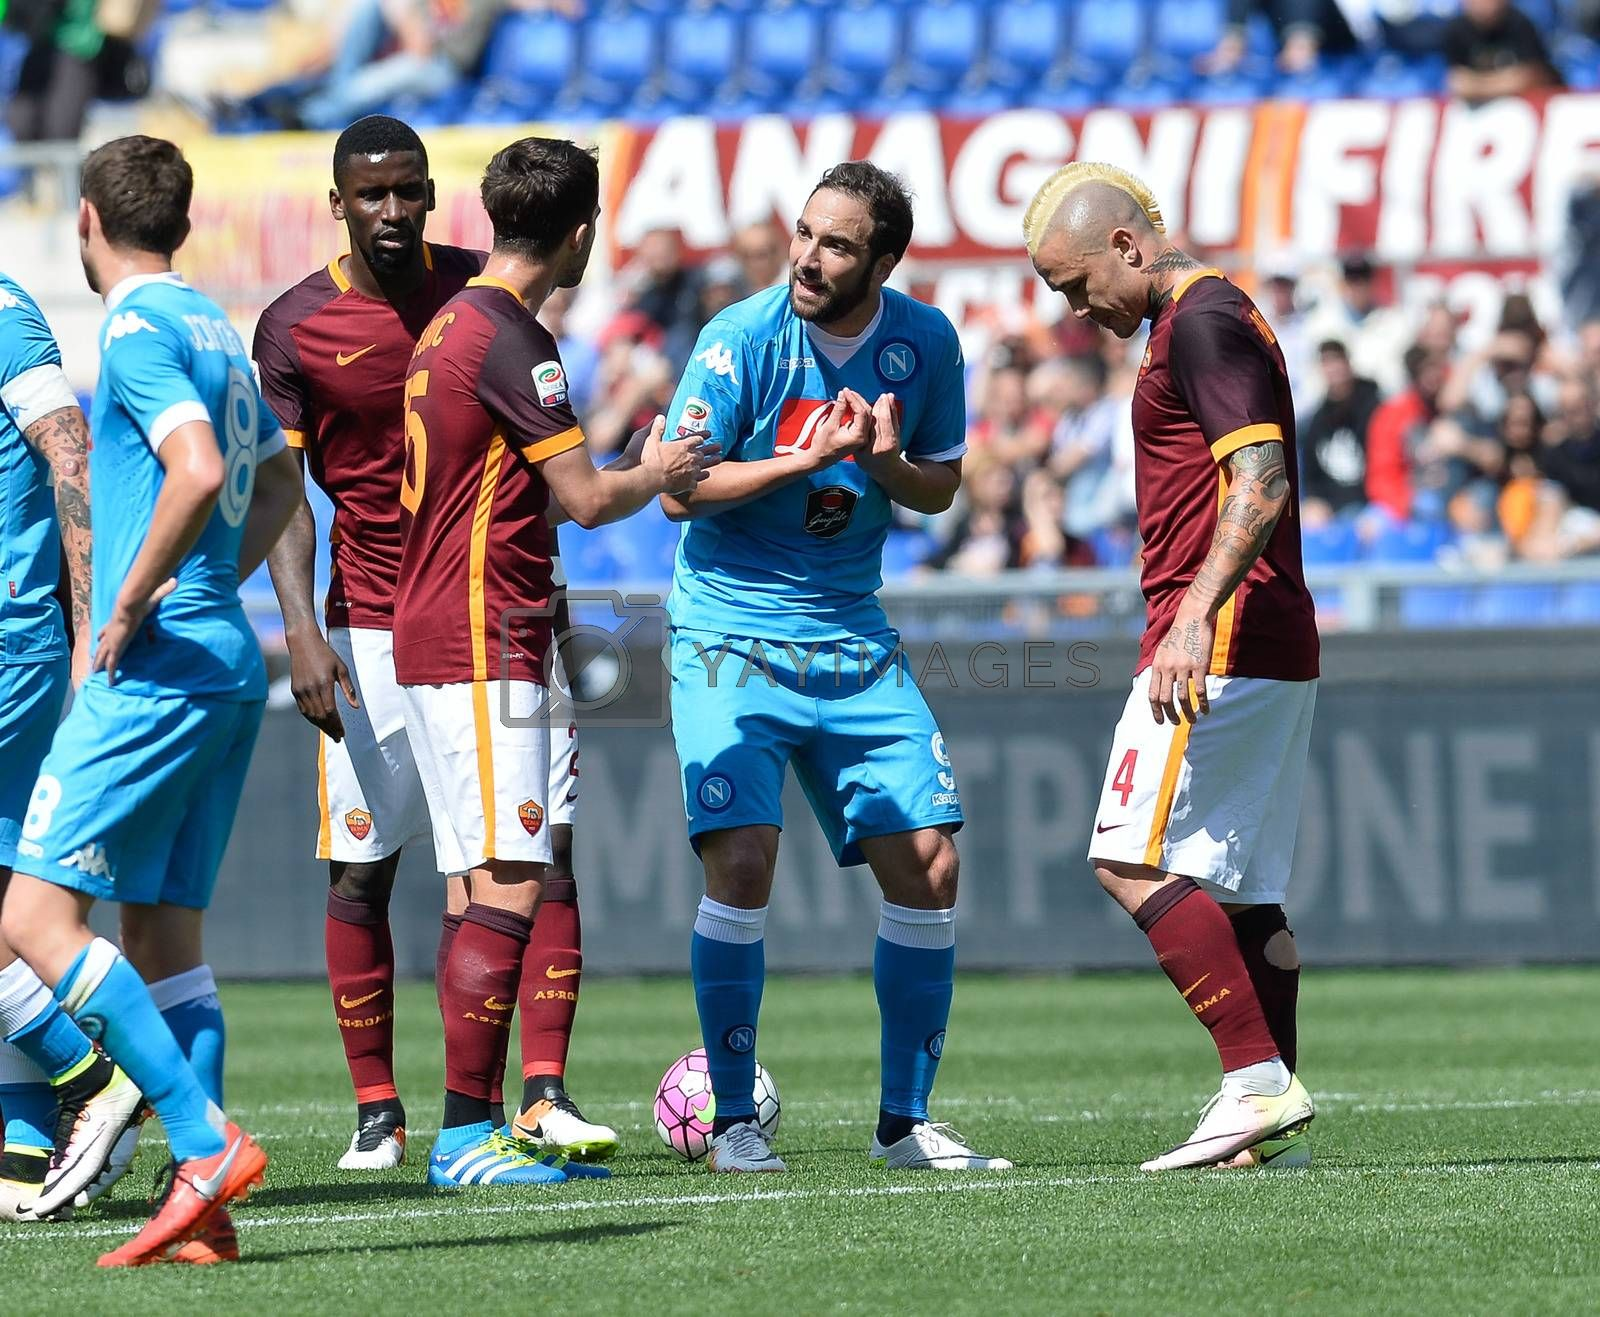 ITALY, Rome: Gonzalo Higuain complaining to the referee Daniele Orsato during the Italian Serie A football match A.S. Roma vs S.S.C. Napoli at the Olympic Stadium in Rome, on April 25, 2016